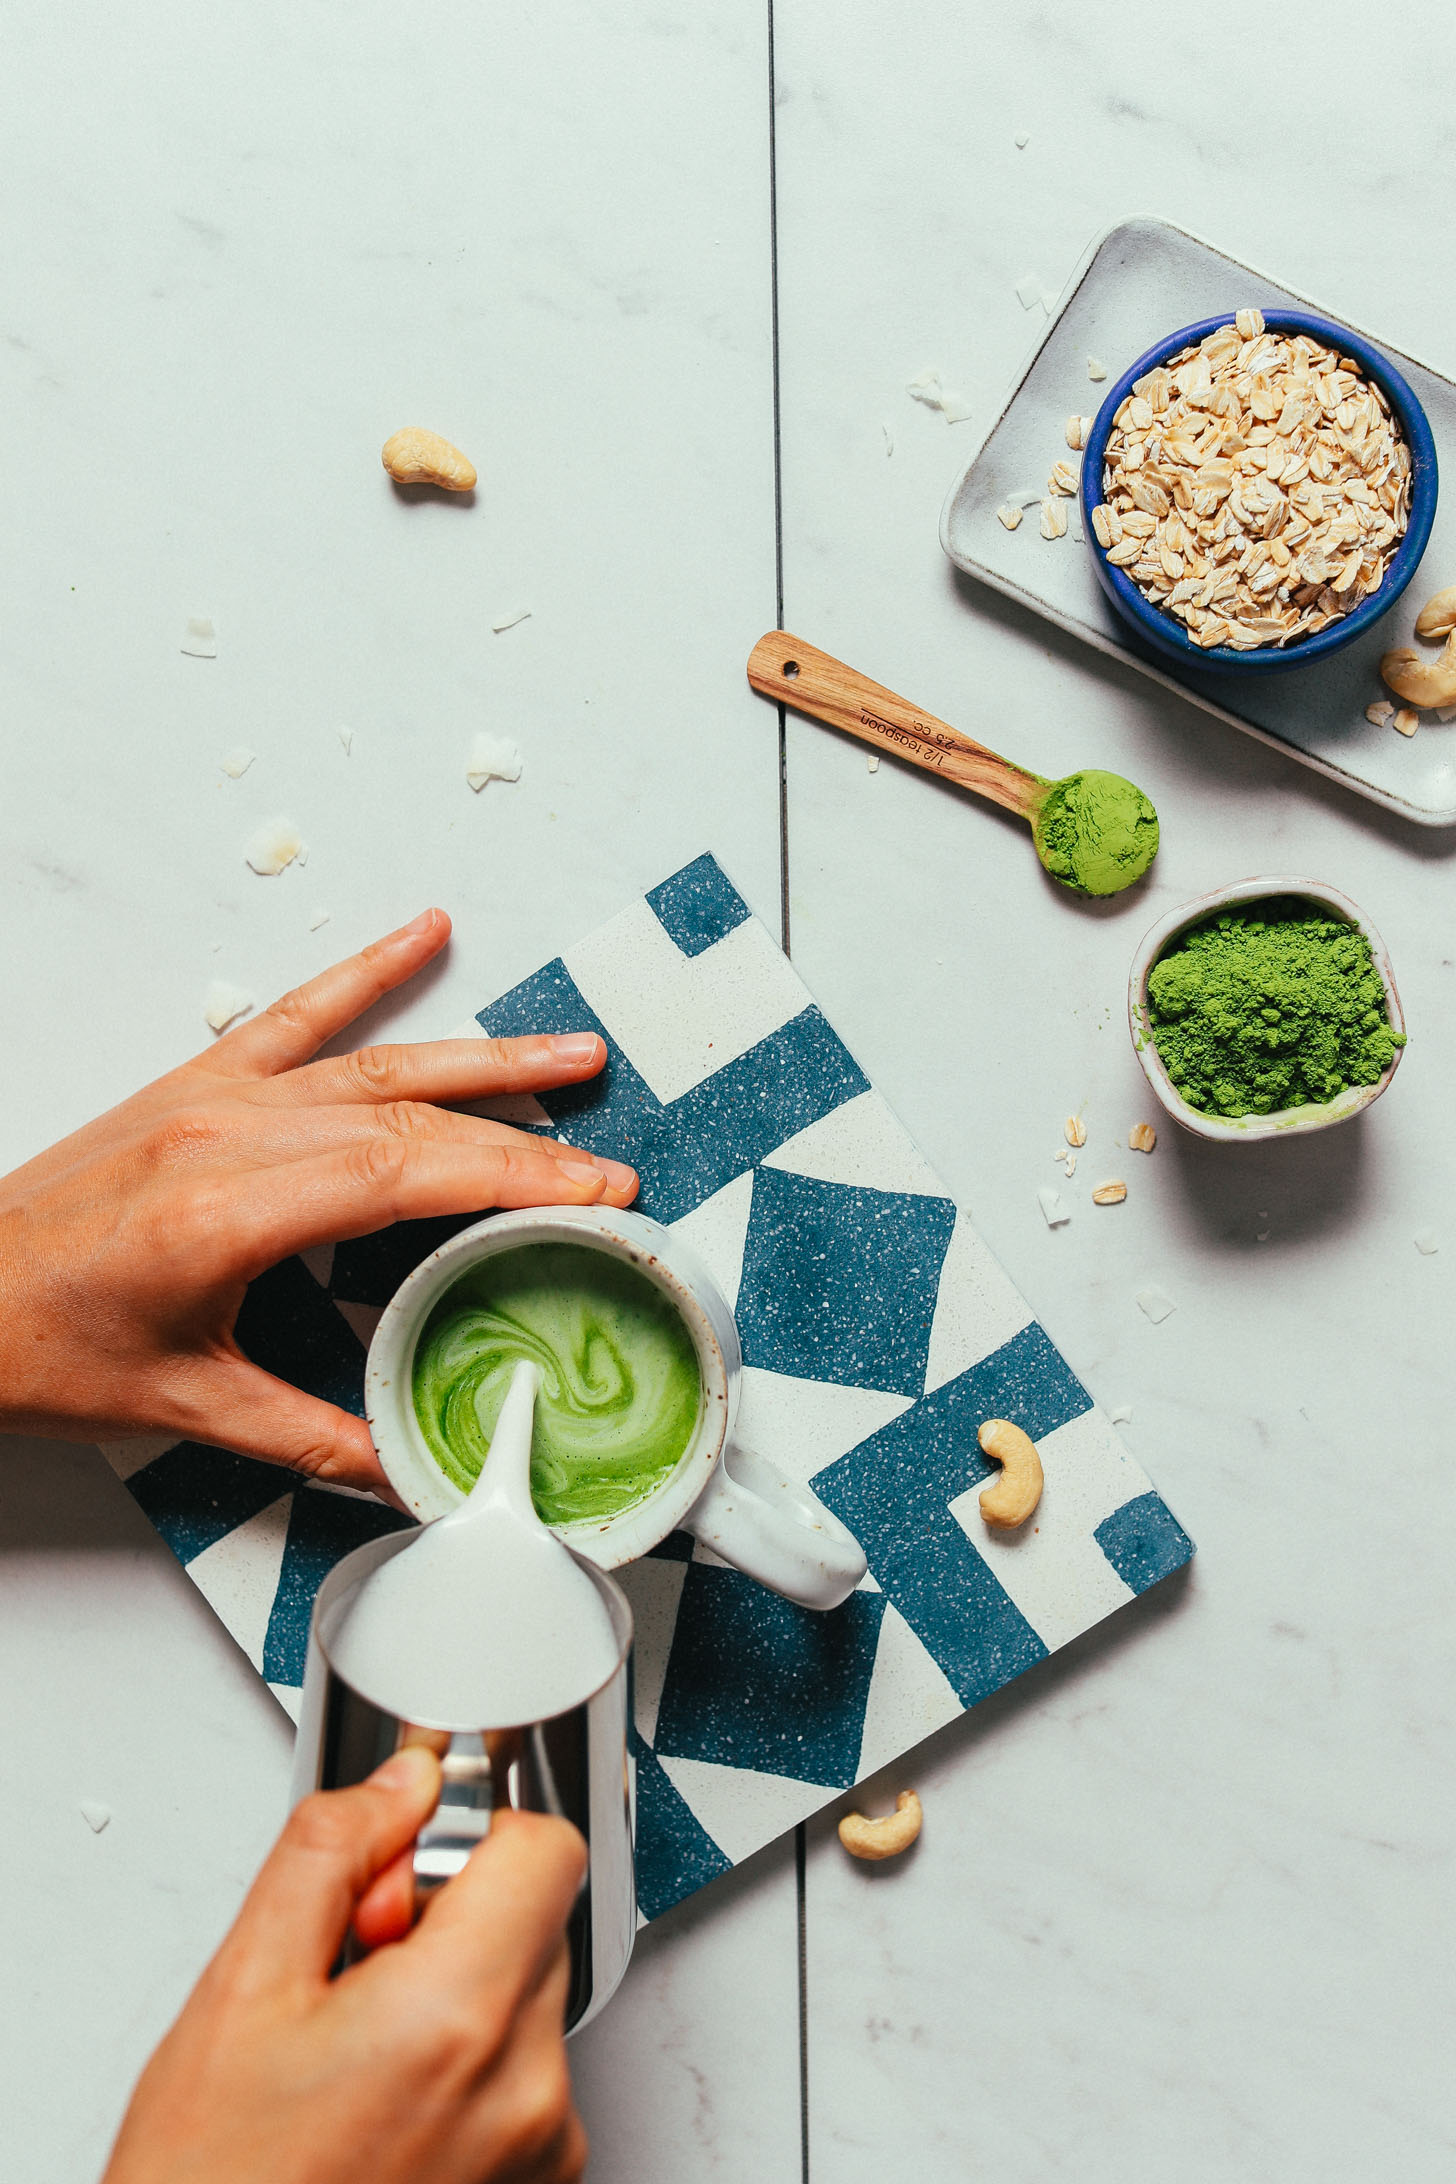 Pouring homemade creamy oat milk into a mug of matcha